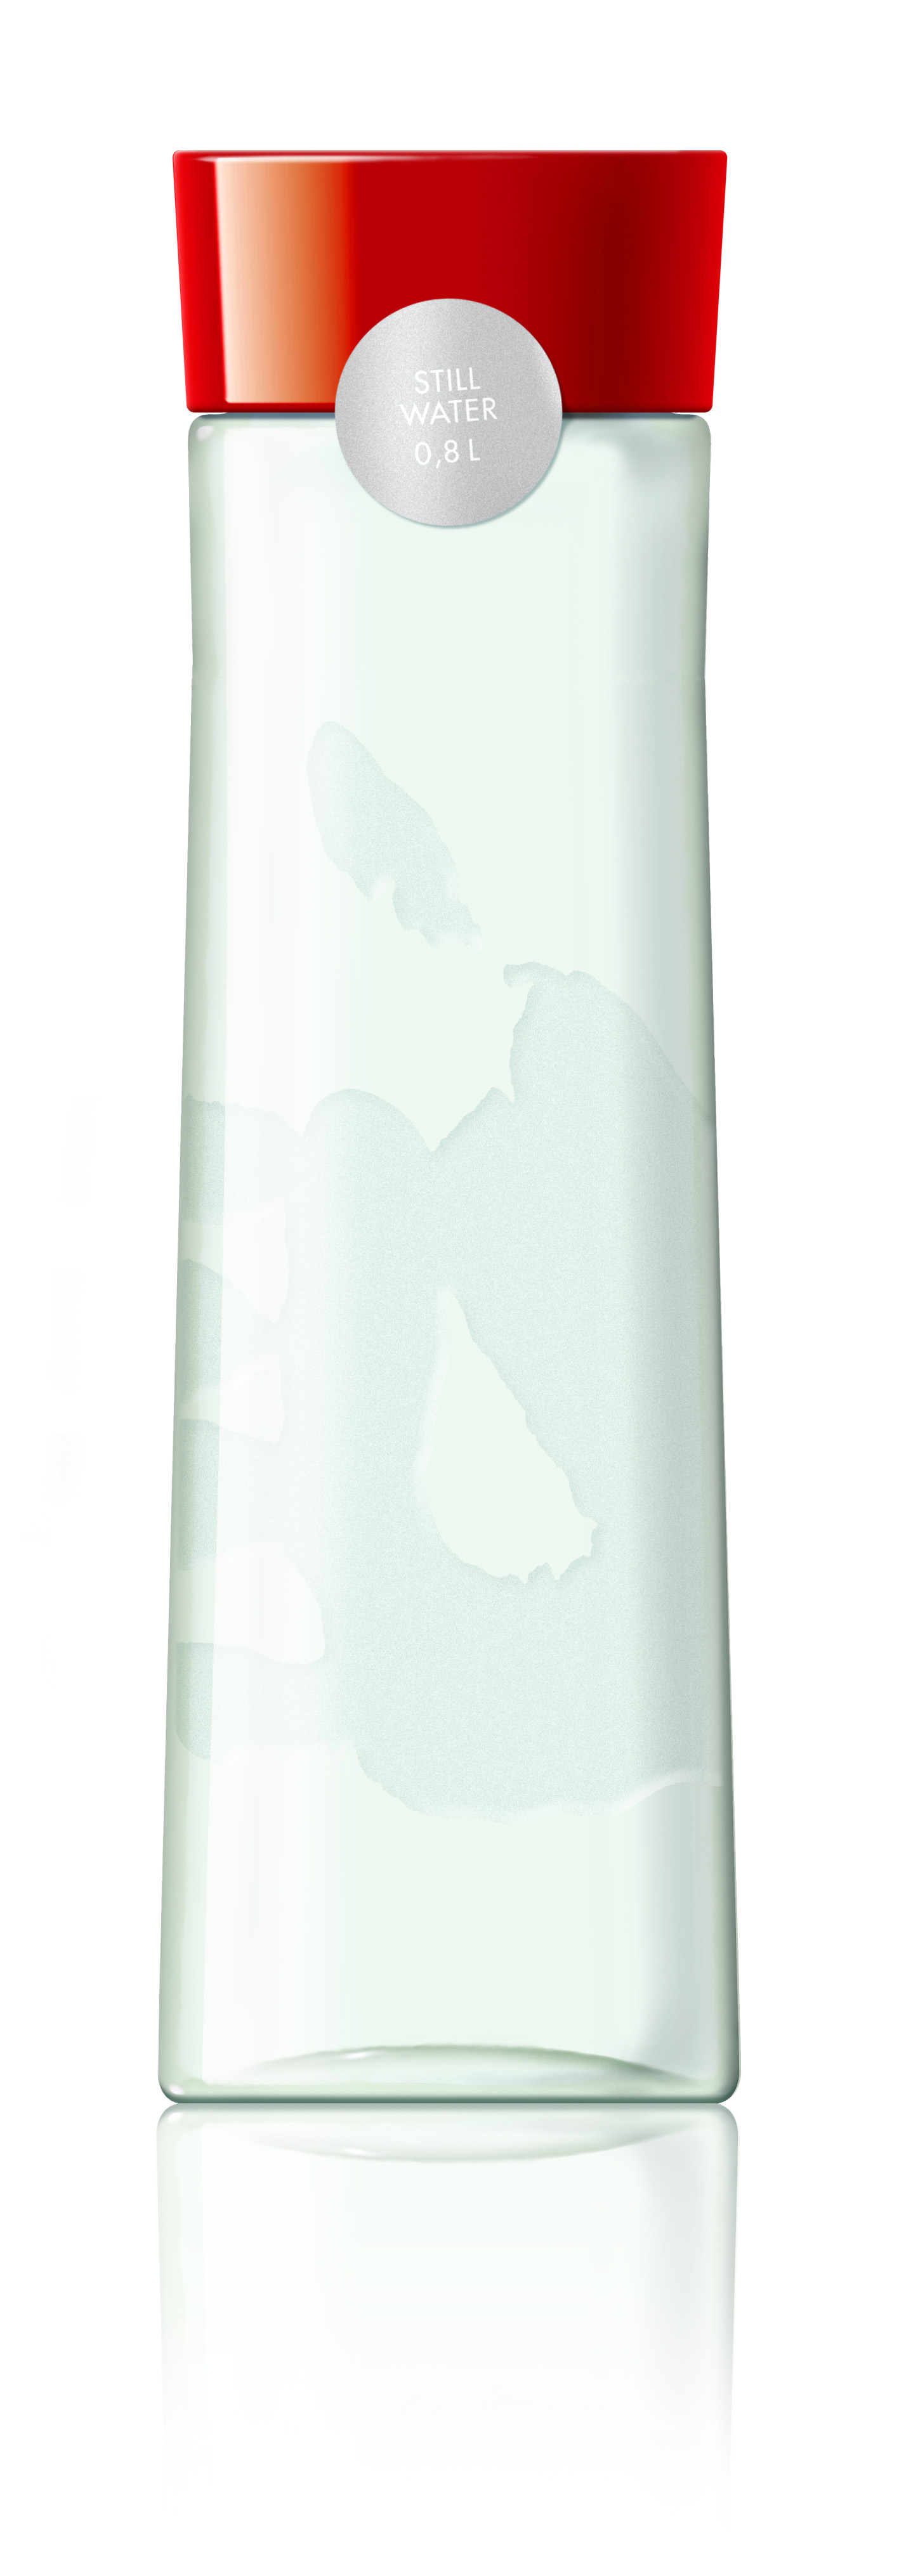 Scandic's own designed water bottle